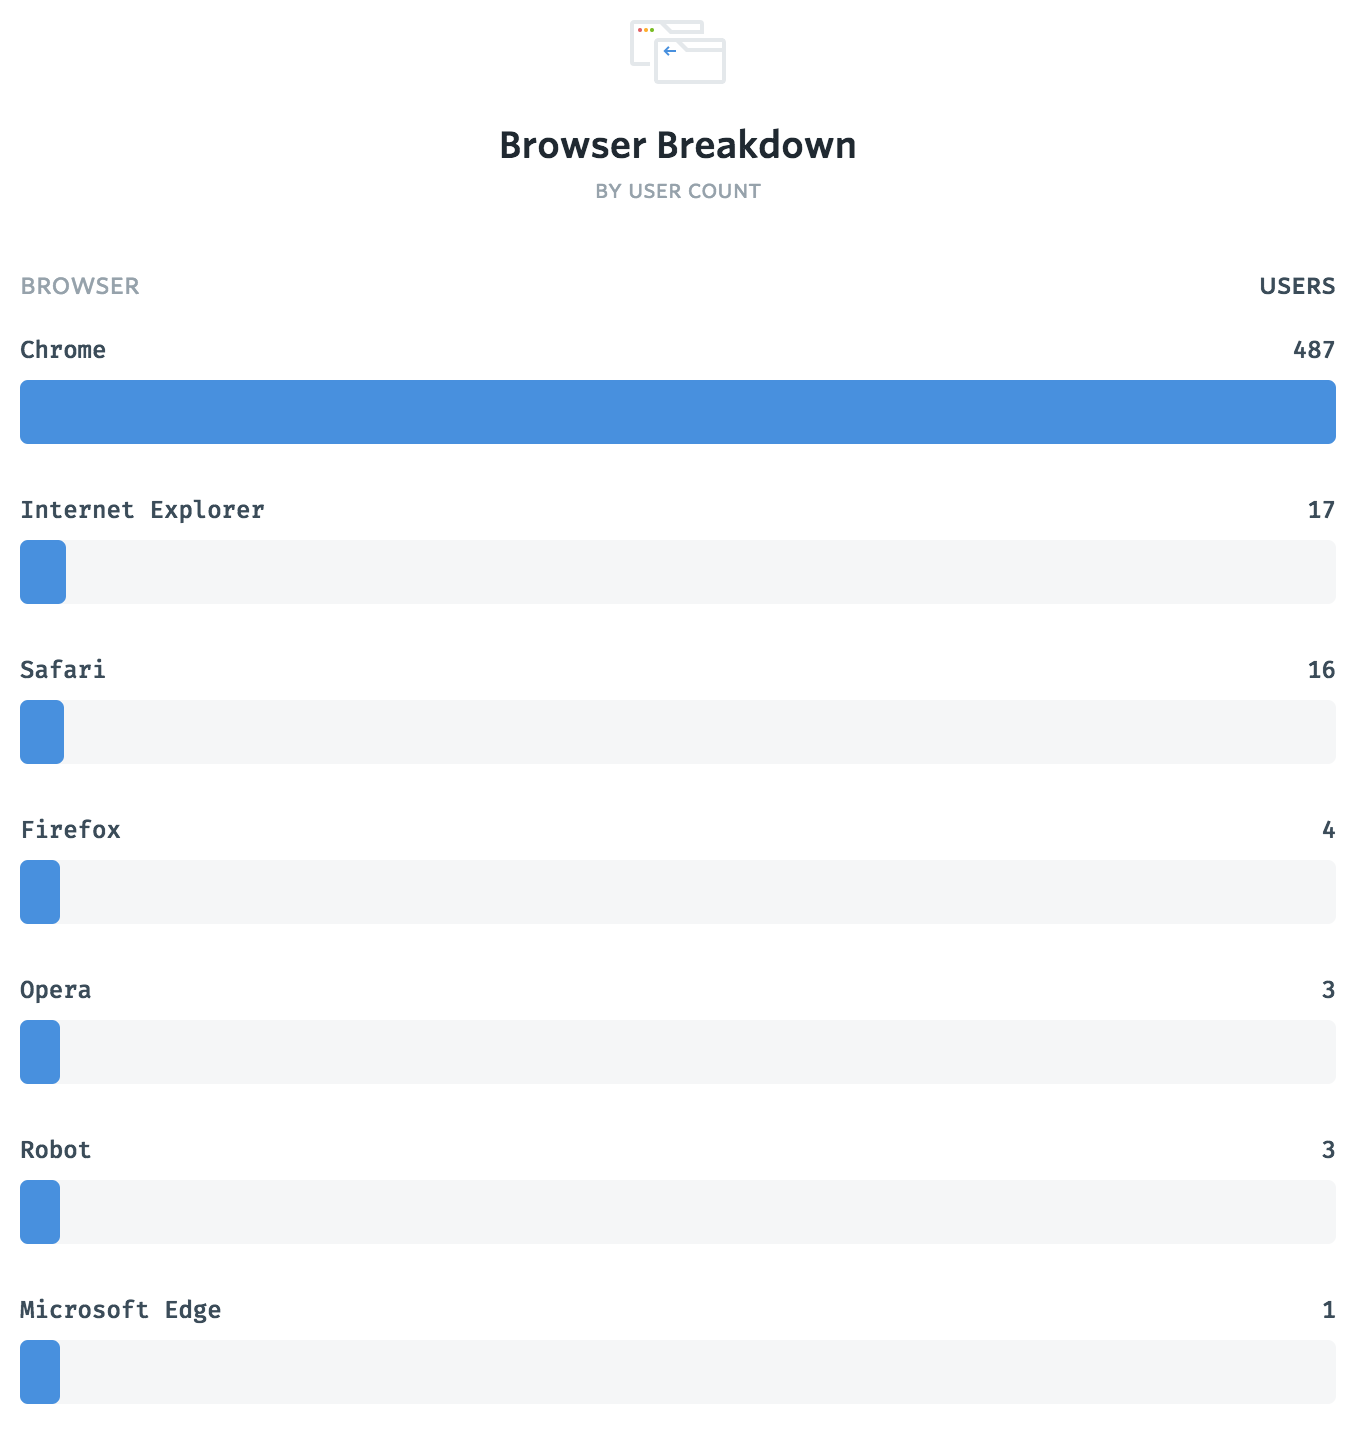 direct_1517832037110-browser_breakdown.png